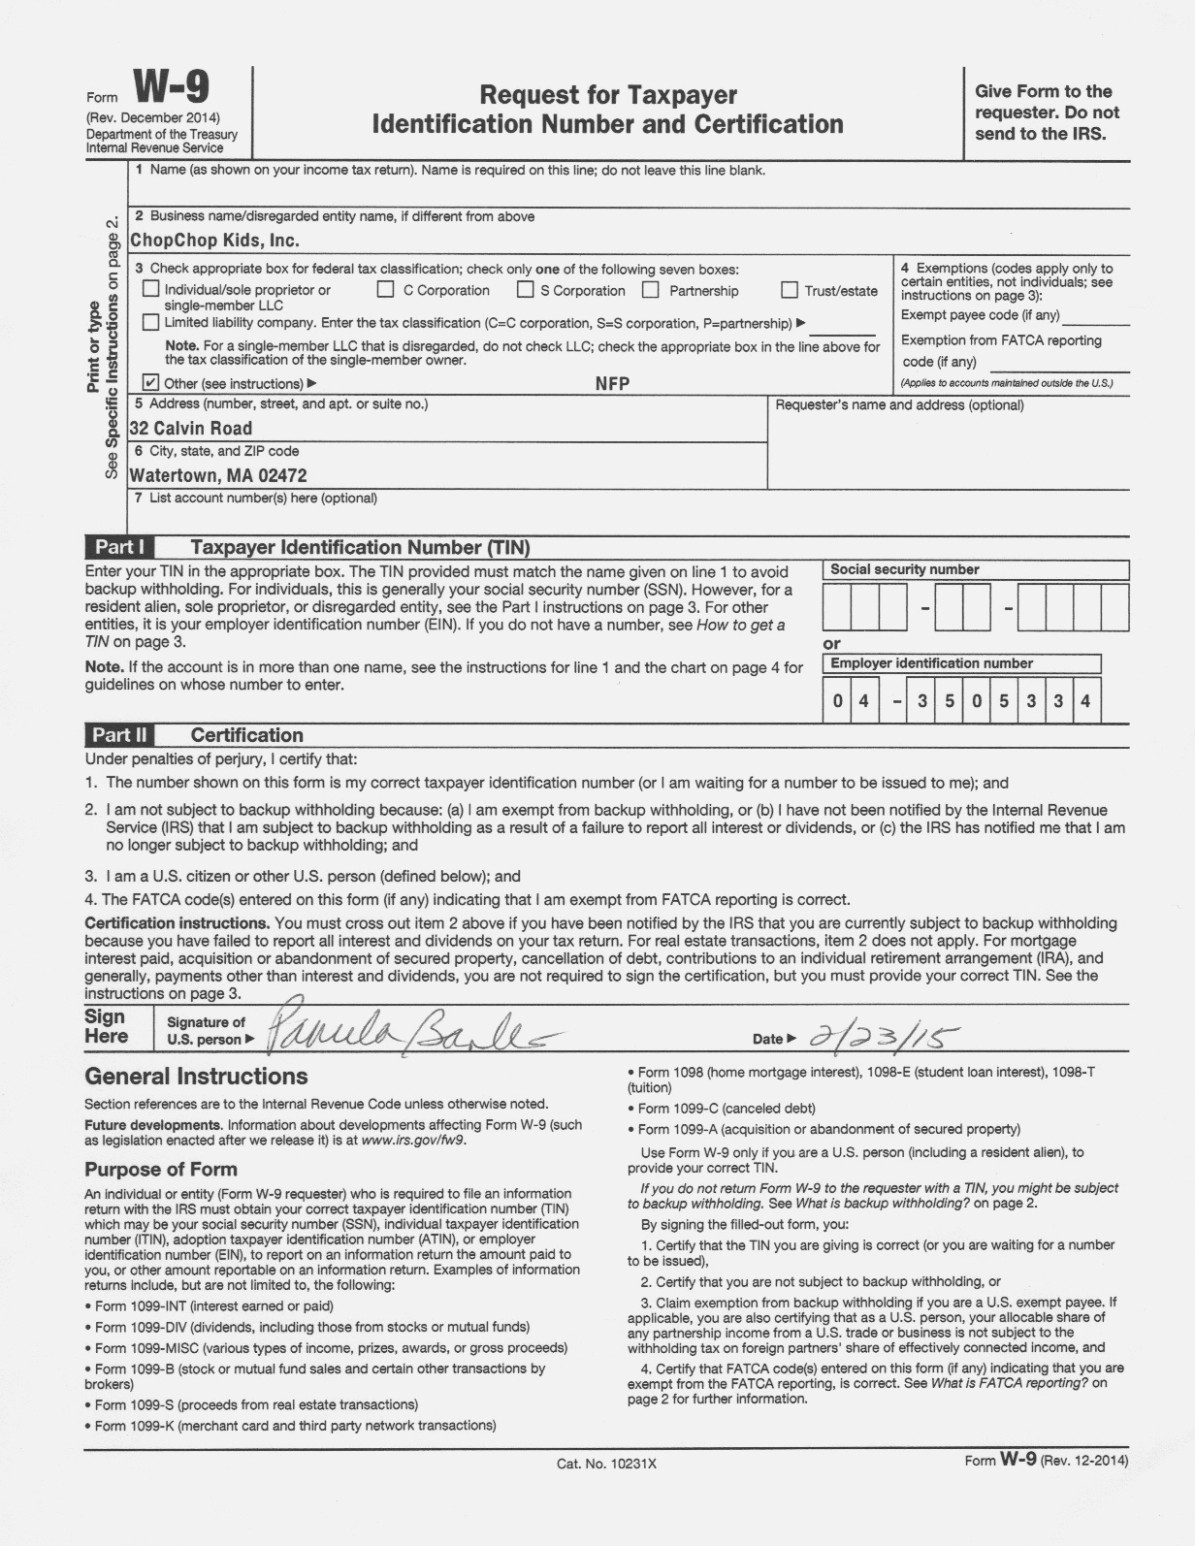 Why Is Everyone Talking About | The Invoice And Form Template - W9 Form Printable 2017 Free